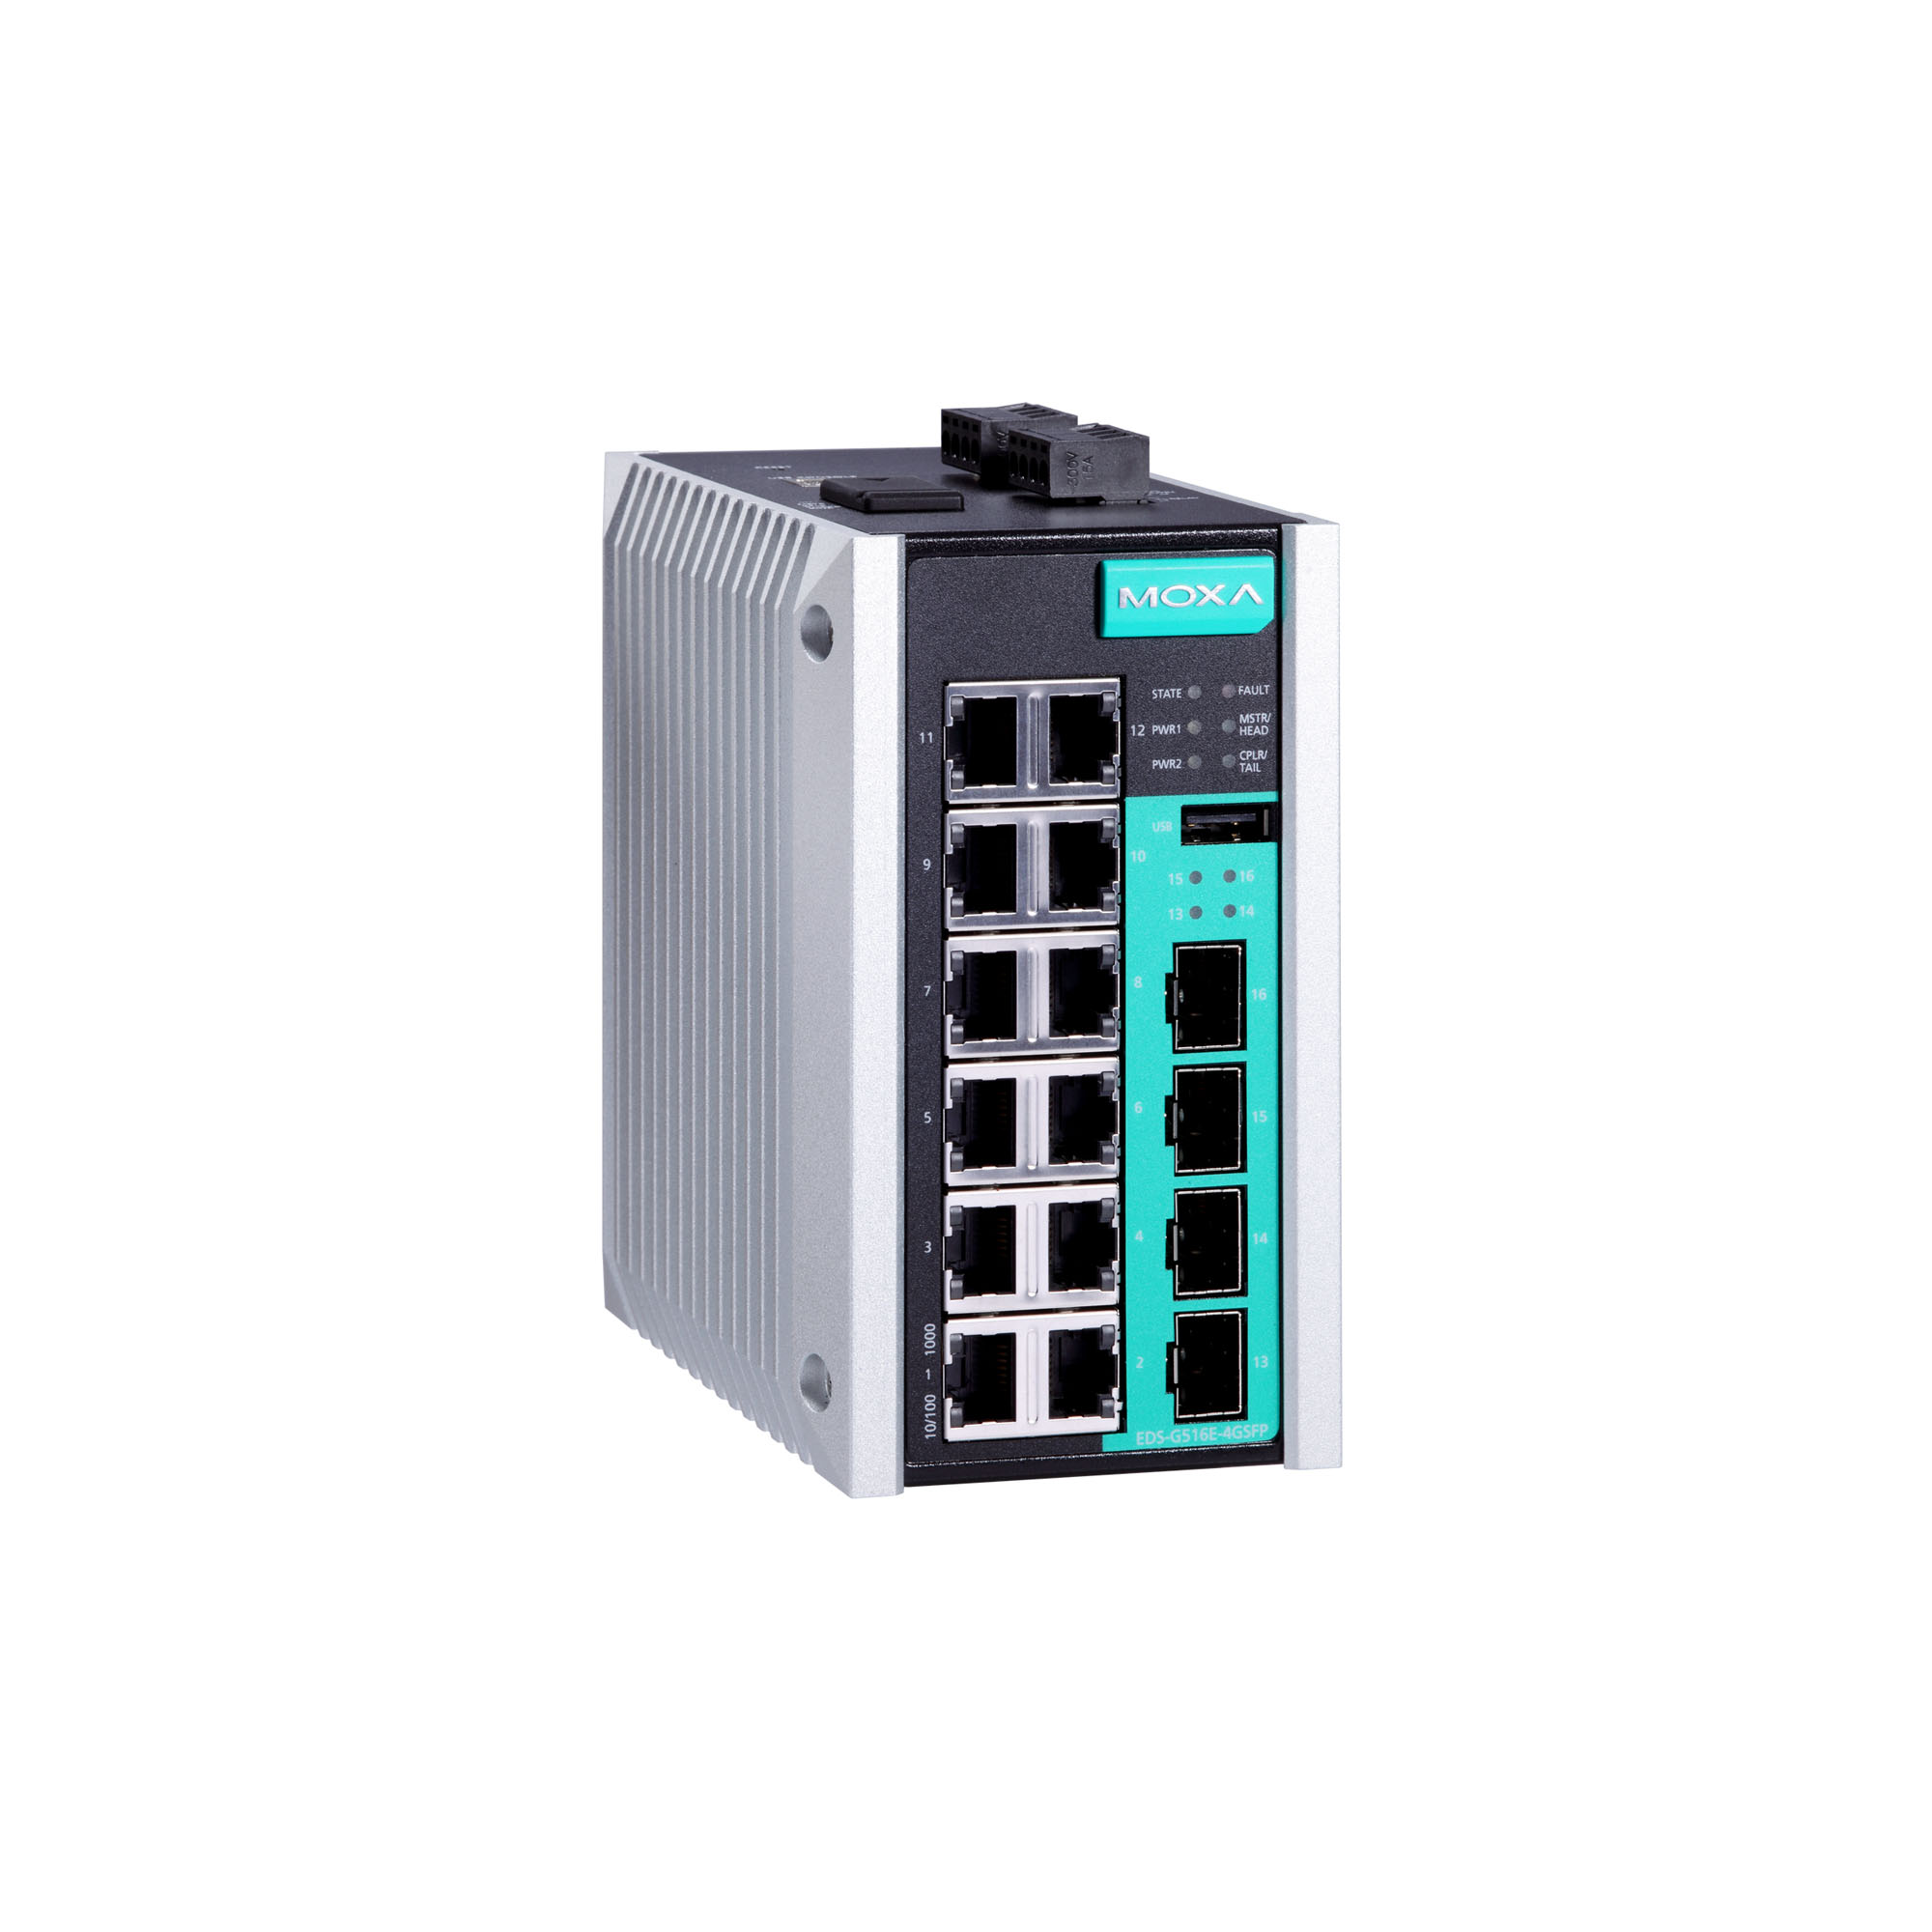 Moxa Switch Eds G516e Series Layer 2 Managed Switches Moxa